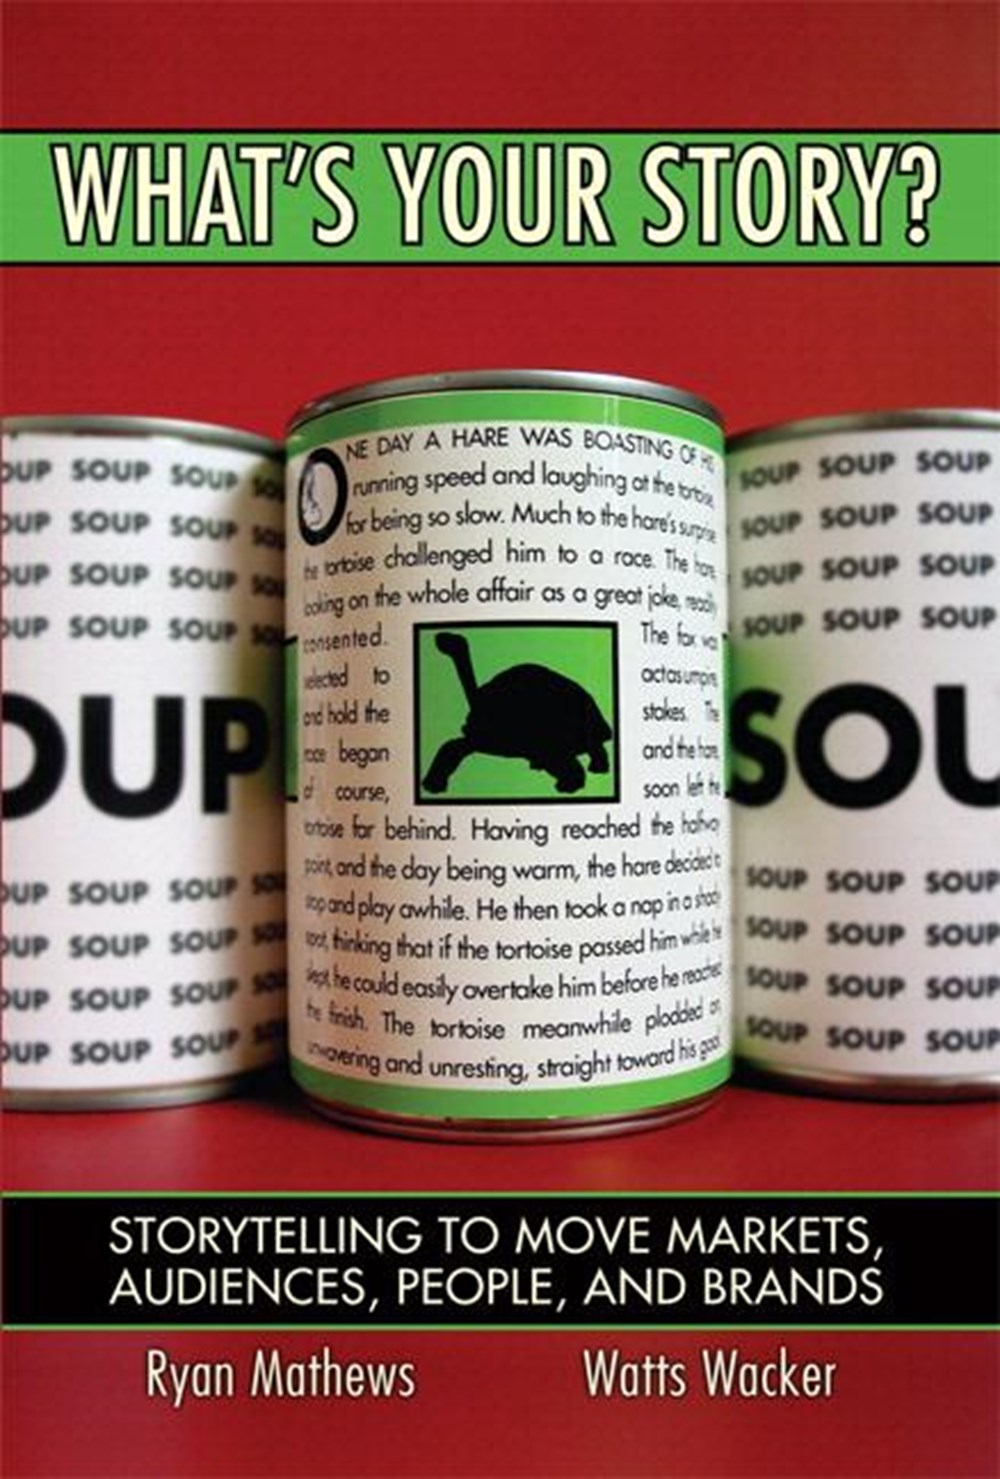 What's Your Story? Storytelling to Move Markets, Audiences, People, and Brands (Paperback)